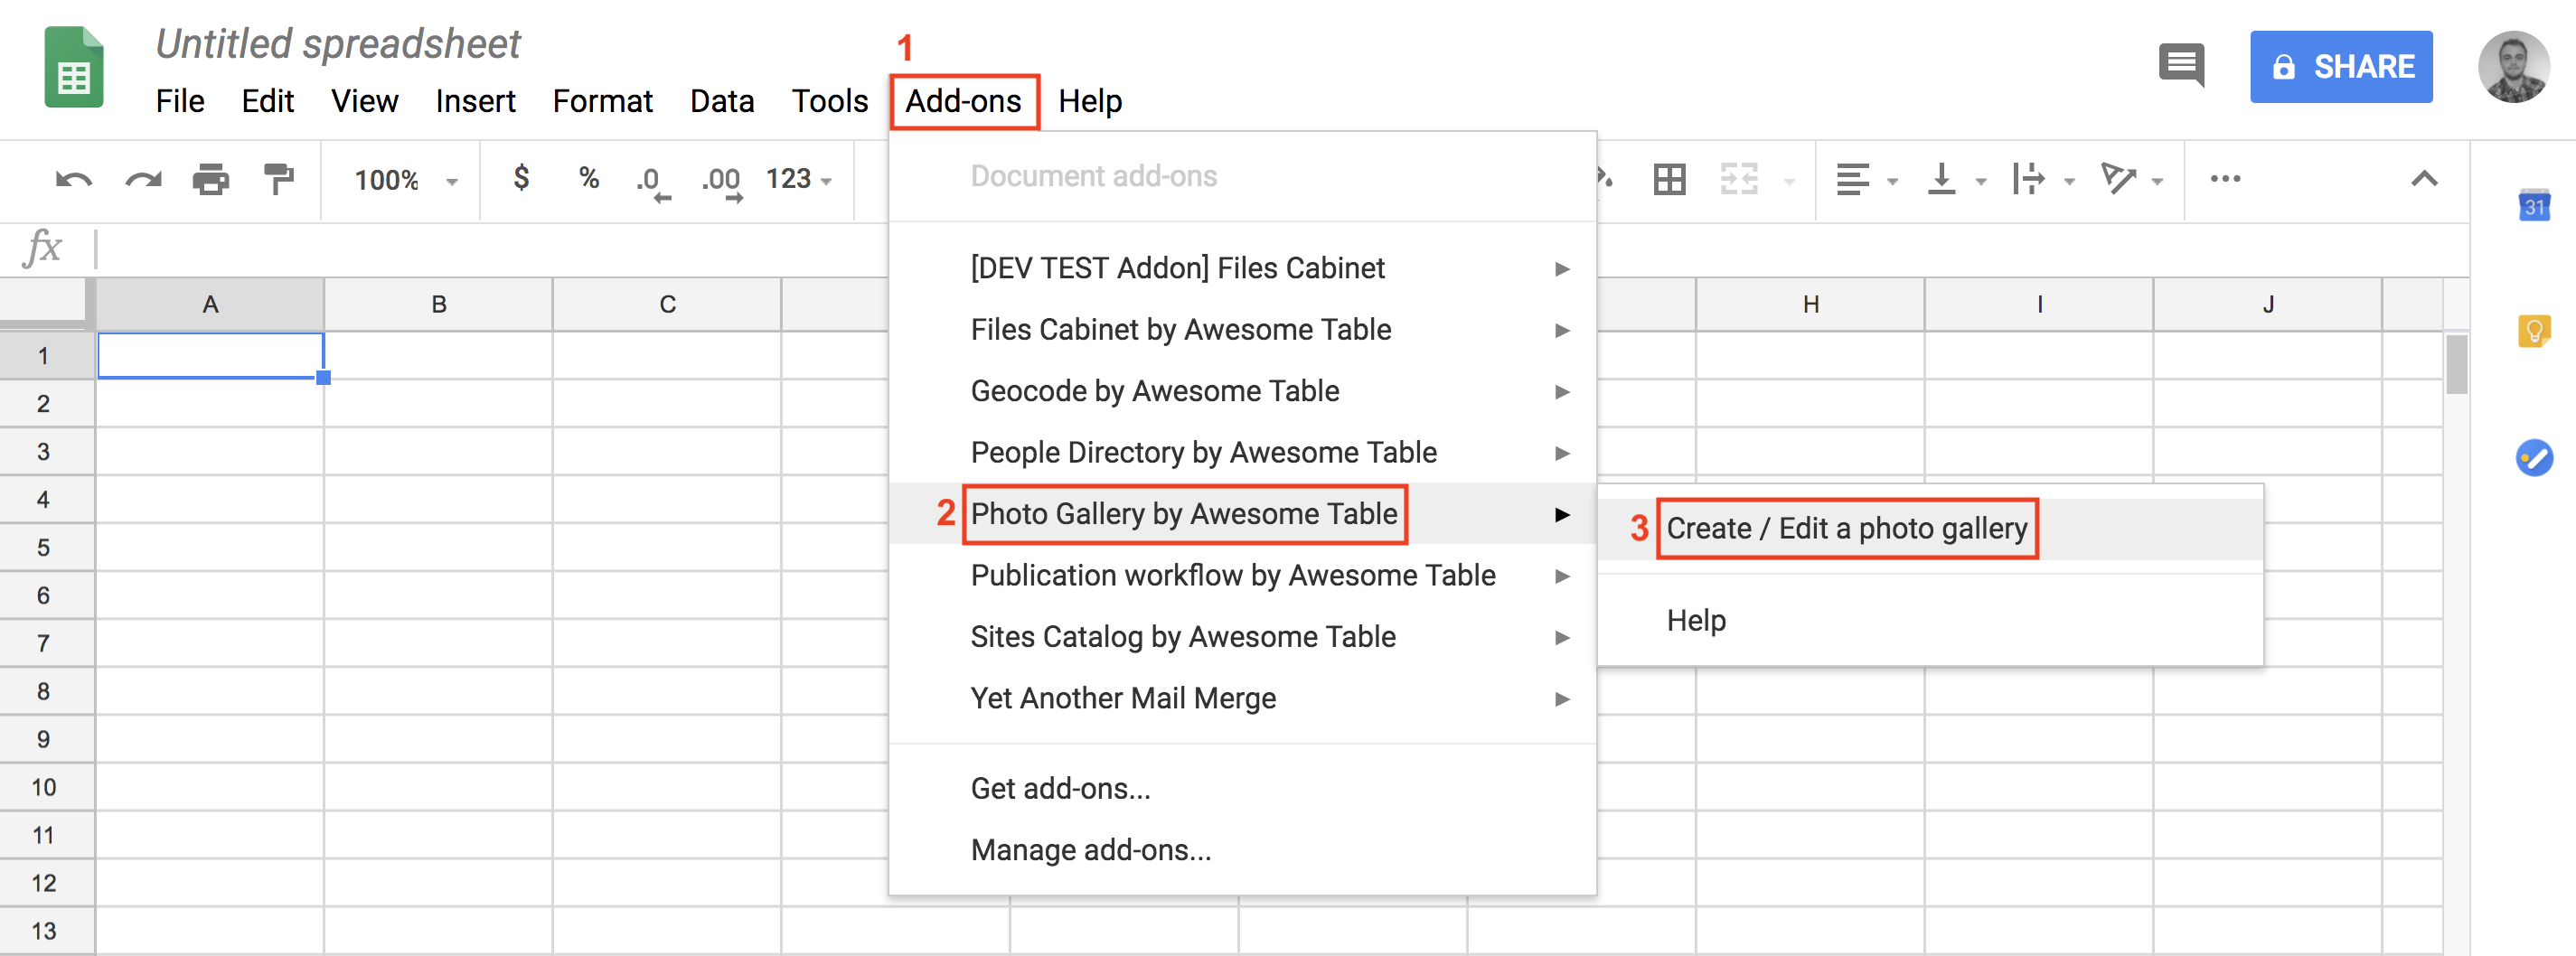 Display images from Google Drive – Documentation - Awesome